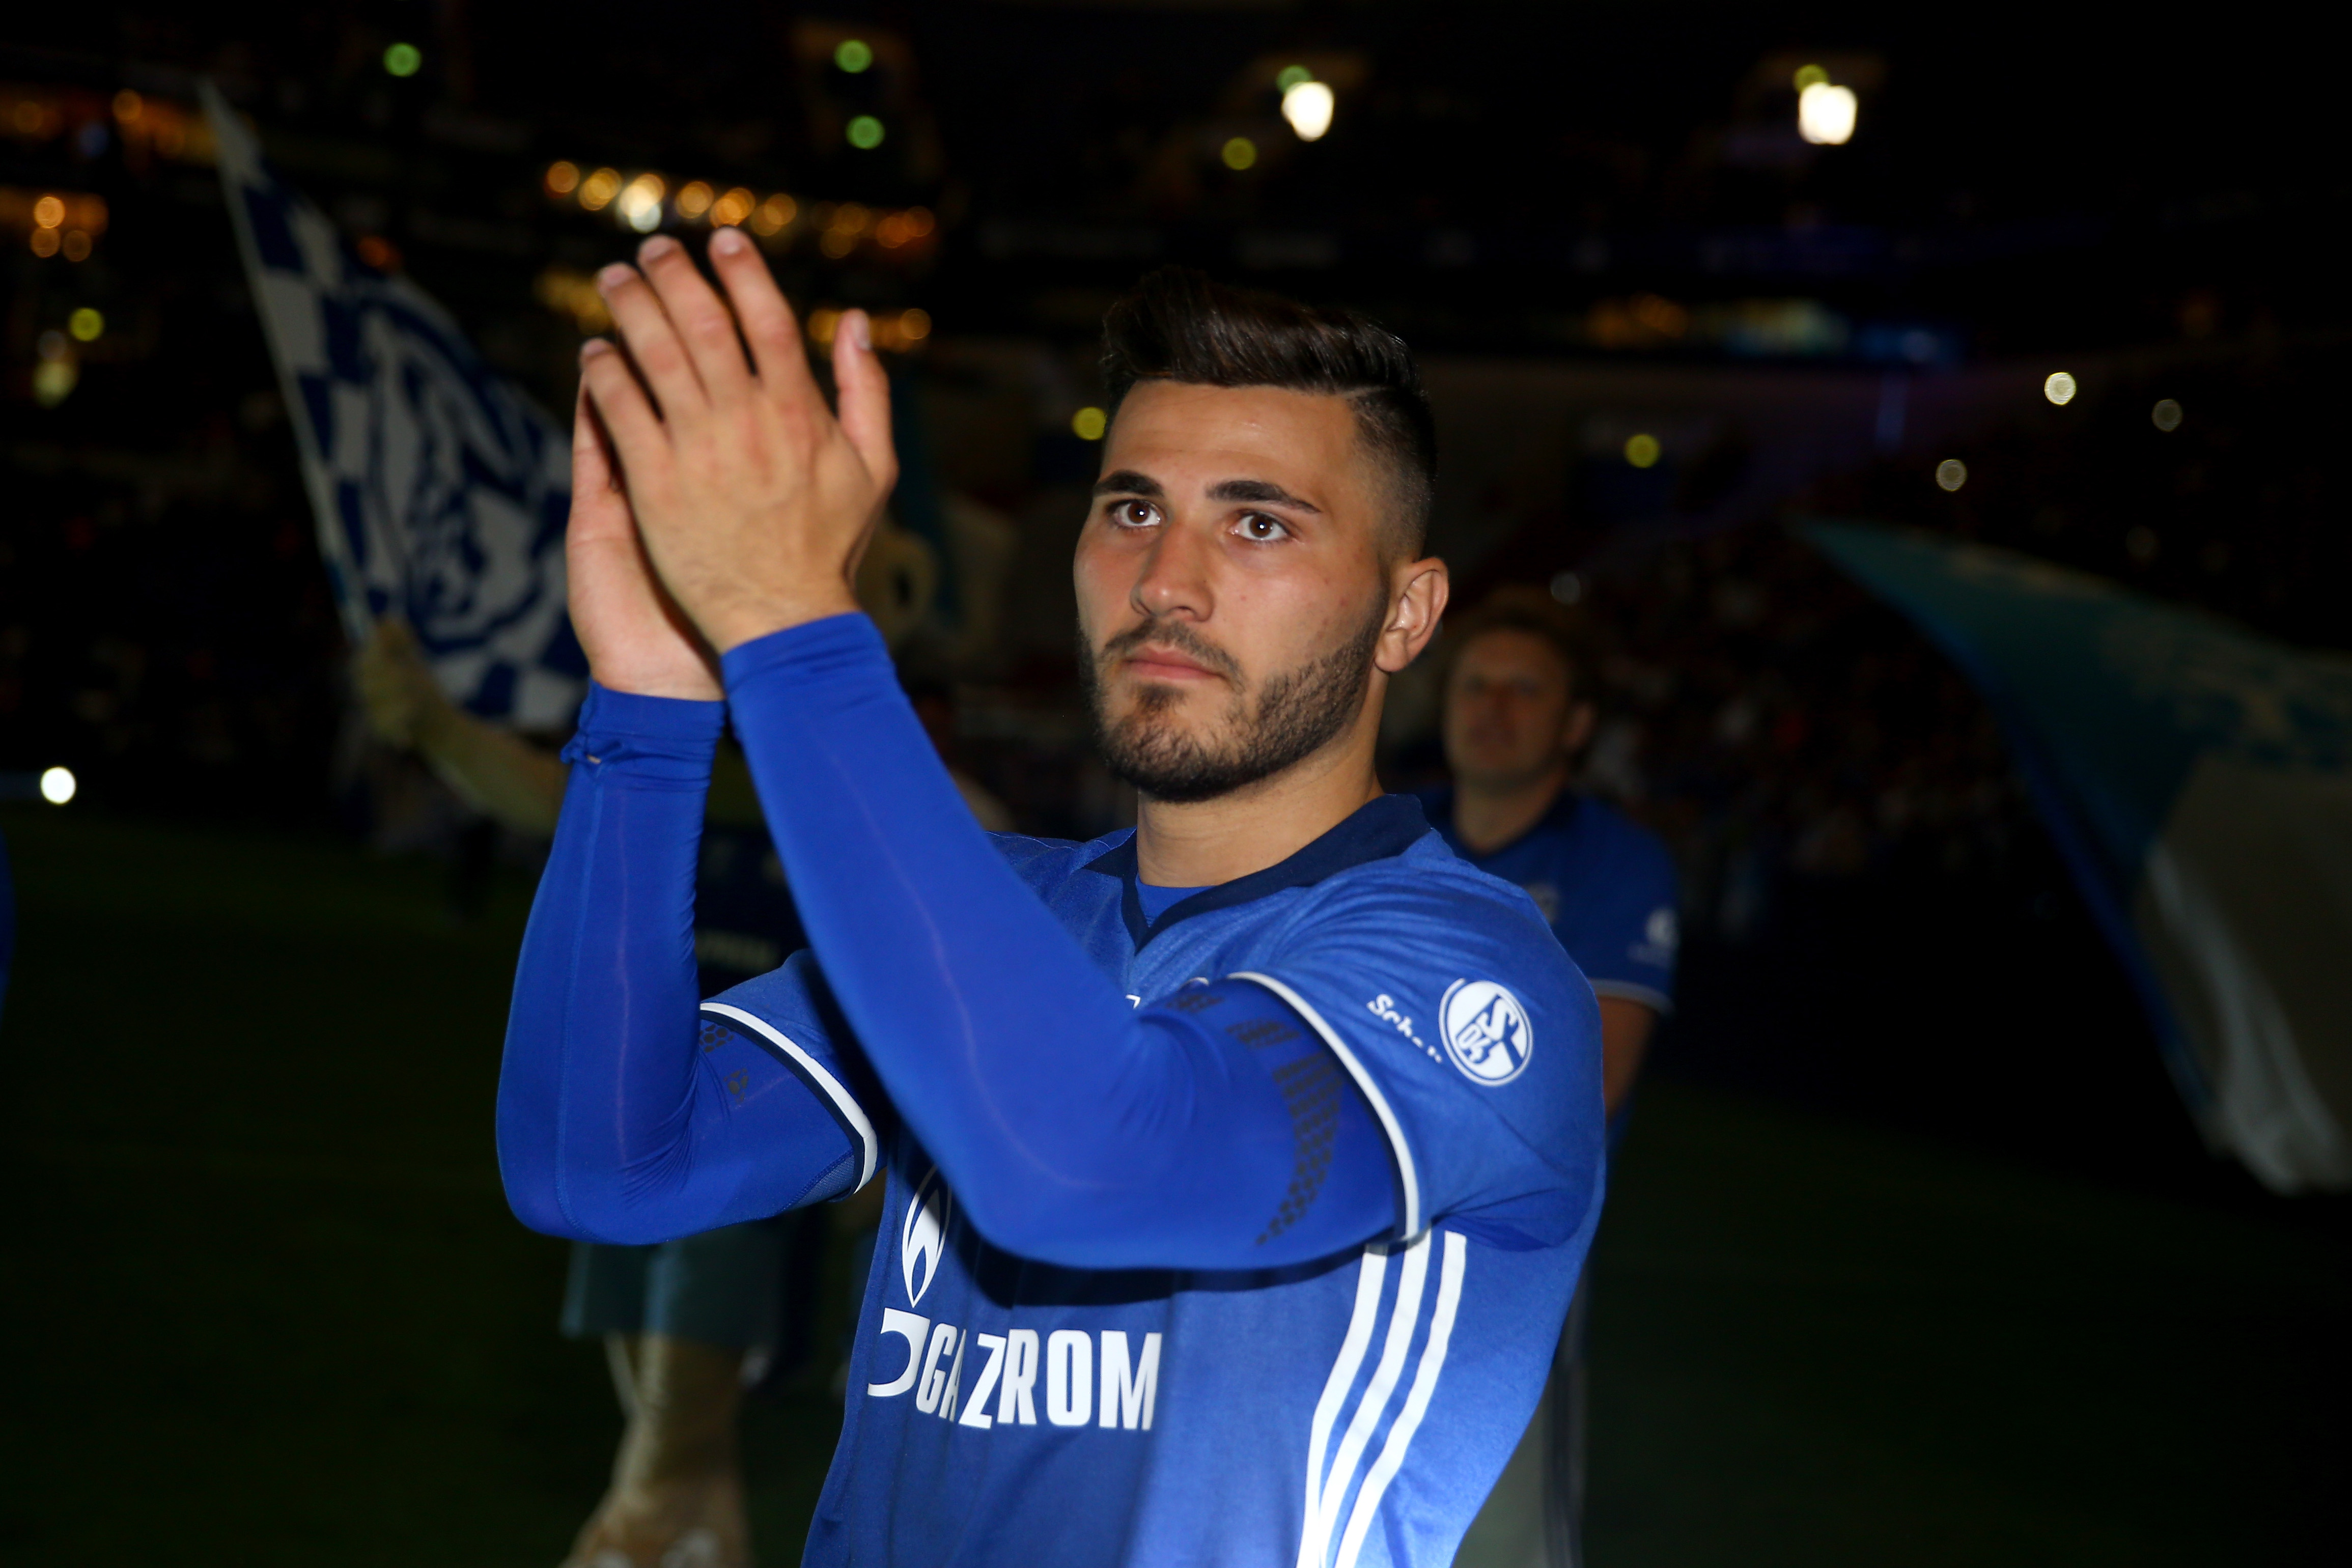 GELSENKIRCHEN, GERMANY - MAY 21: Sead Kolasinac of Schalke is seen after the 20 years of Eurofighter match between Eurofighter and Friends and Euro All Stars at Veltins Arena on May 21, 2017 in Gelsenkirchen, Germany. (Photo by Christof Koepsel/Bongarts/Getty Images)